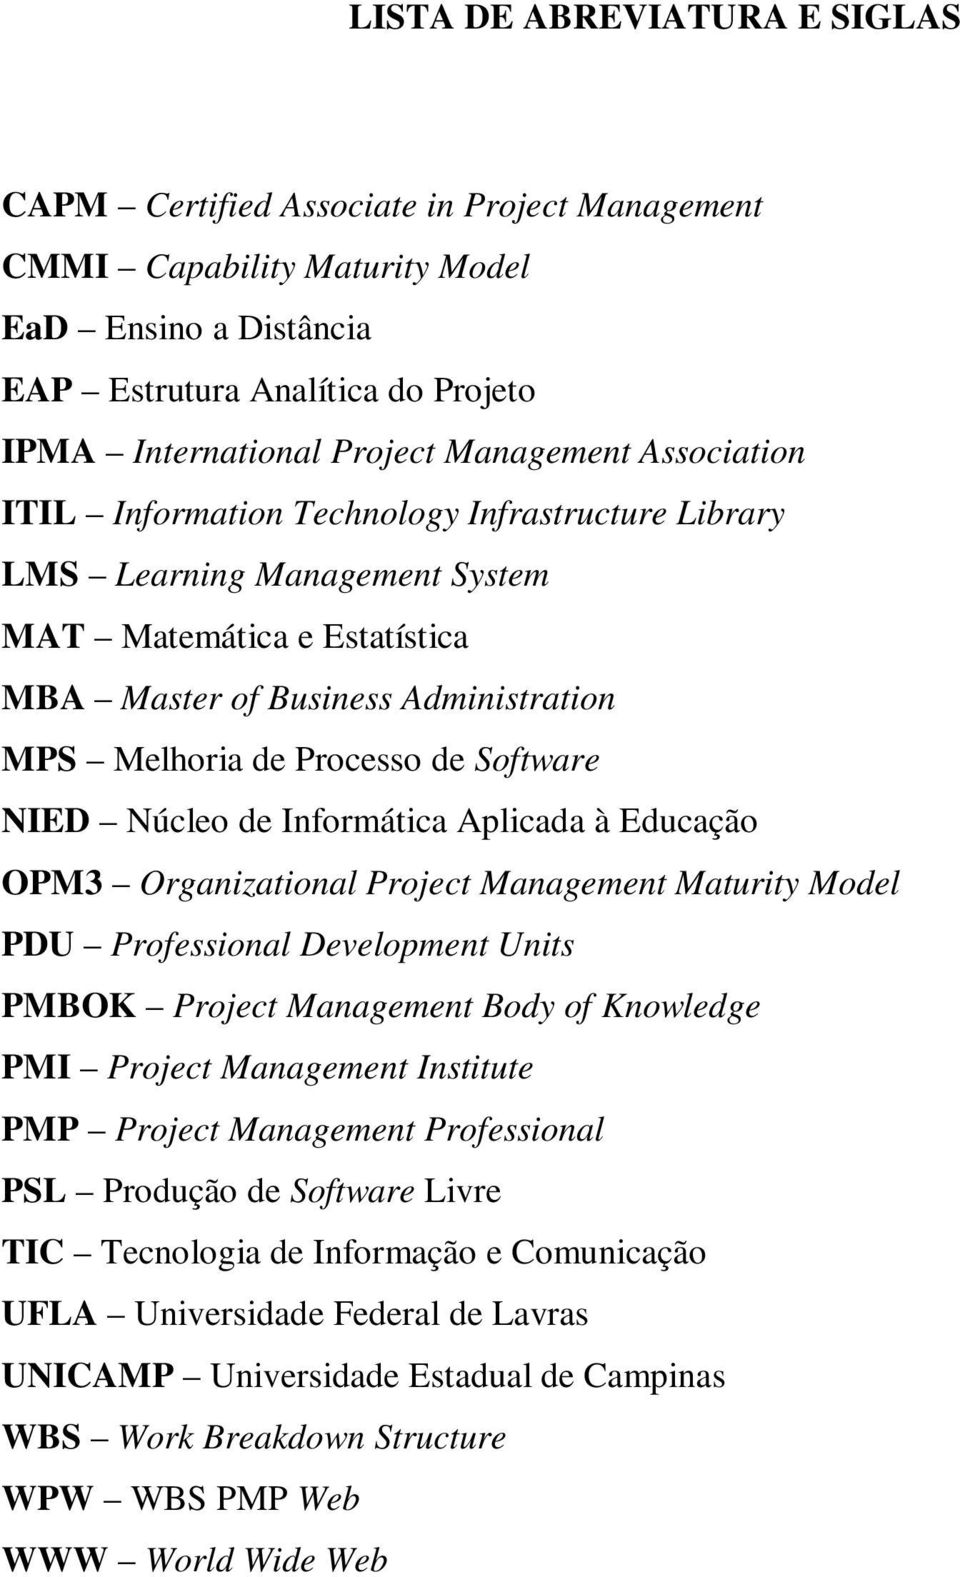 Software NIED Núcleo de Informática Aplicada à Educação OPM3 Organizational Project Management Maturity Model PDU Professional Development Units PMBOK Project Management Body of Knowledge PMI Project